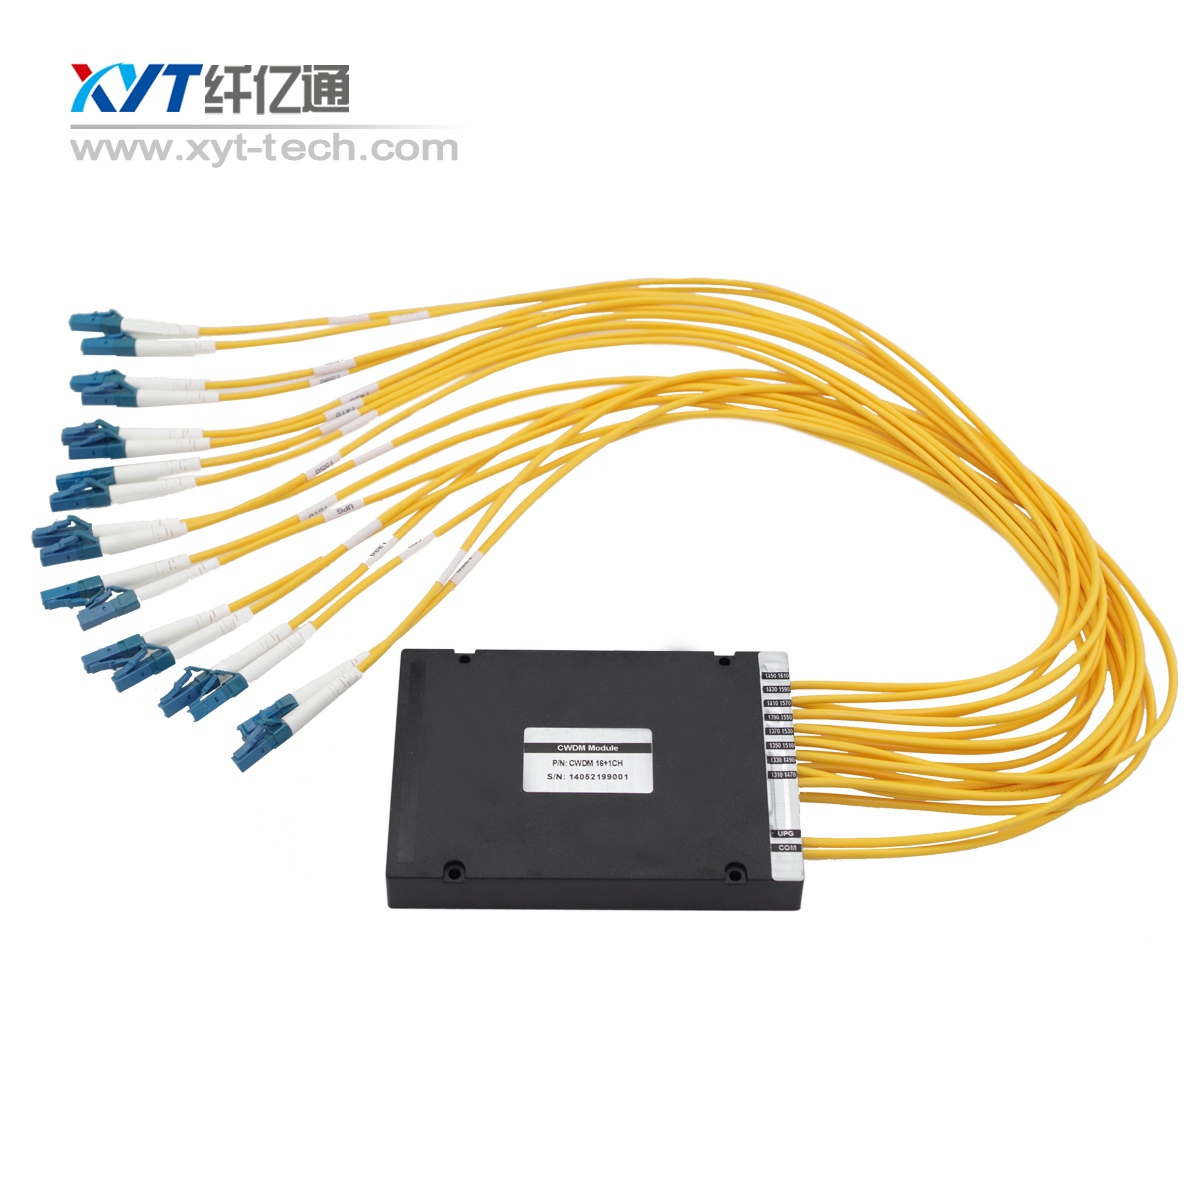 Factory best sale 8 channel CWDM MUX DEMUX ABS type cwdm multiplexer